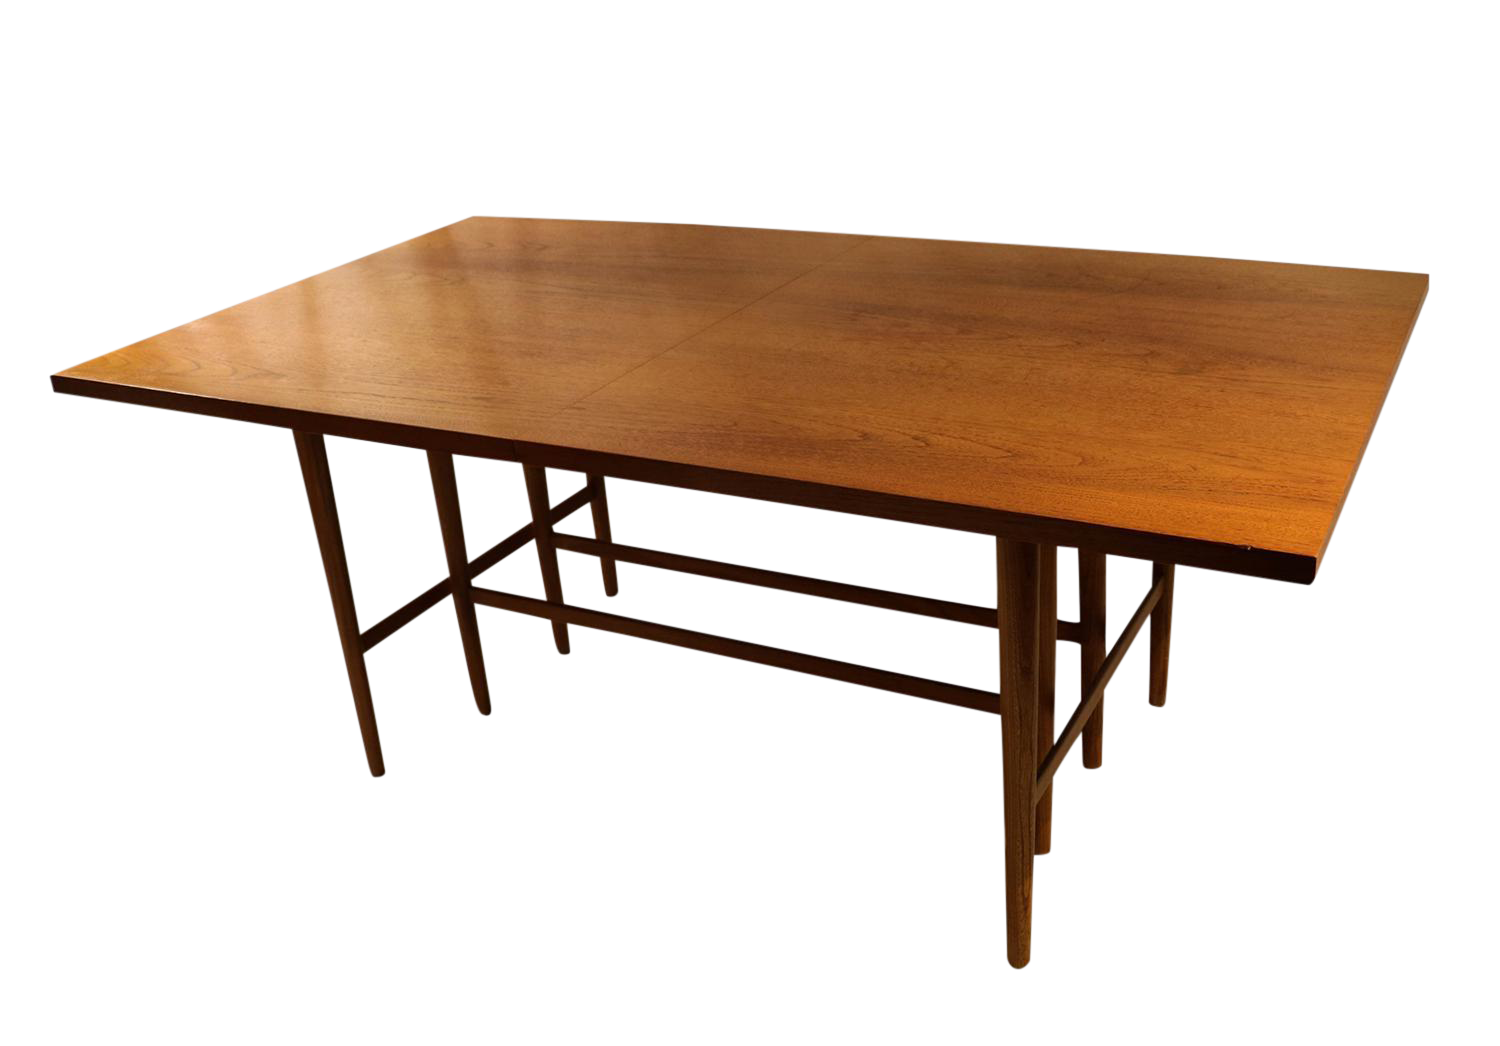 Paul mccobb irwin collection mid century dining table for Table 6 to 16